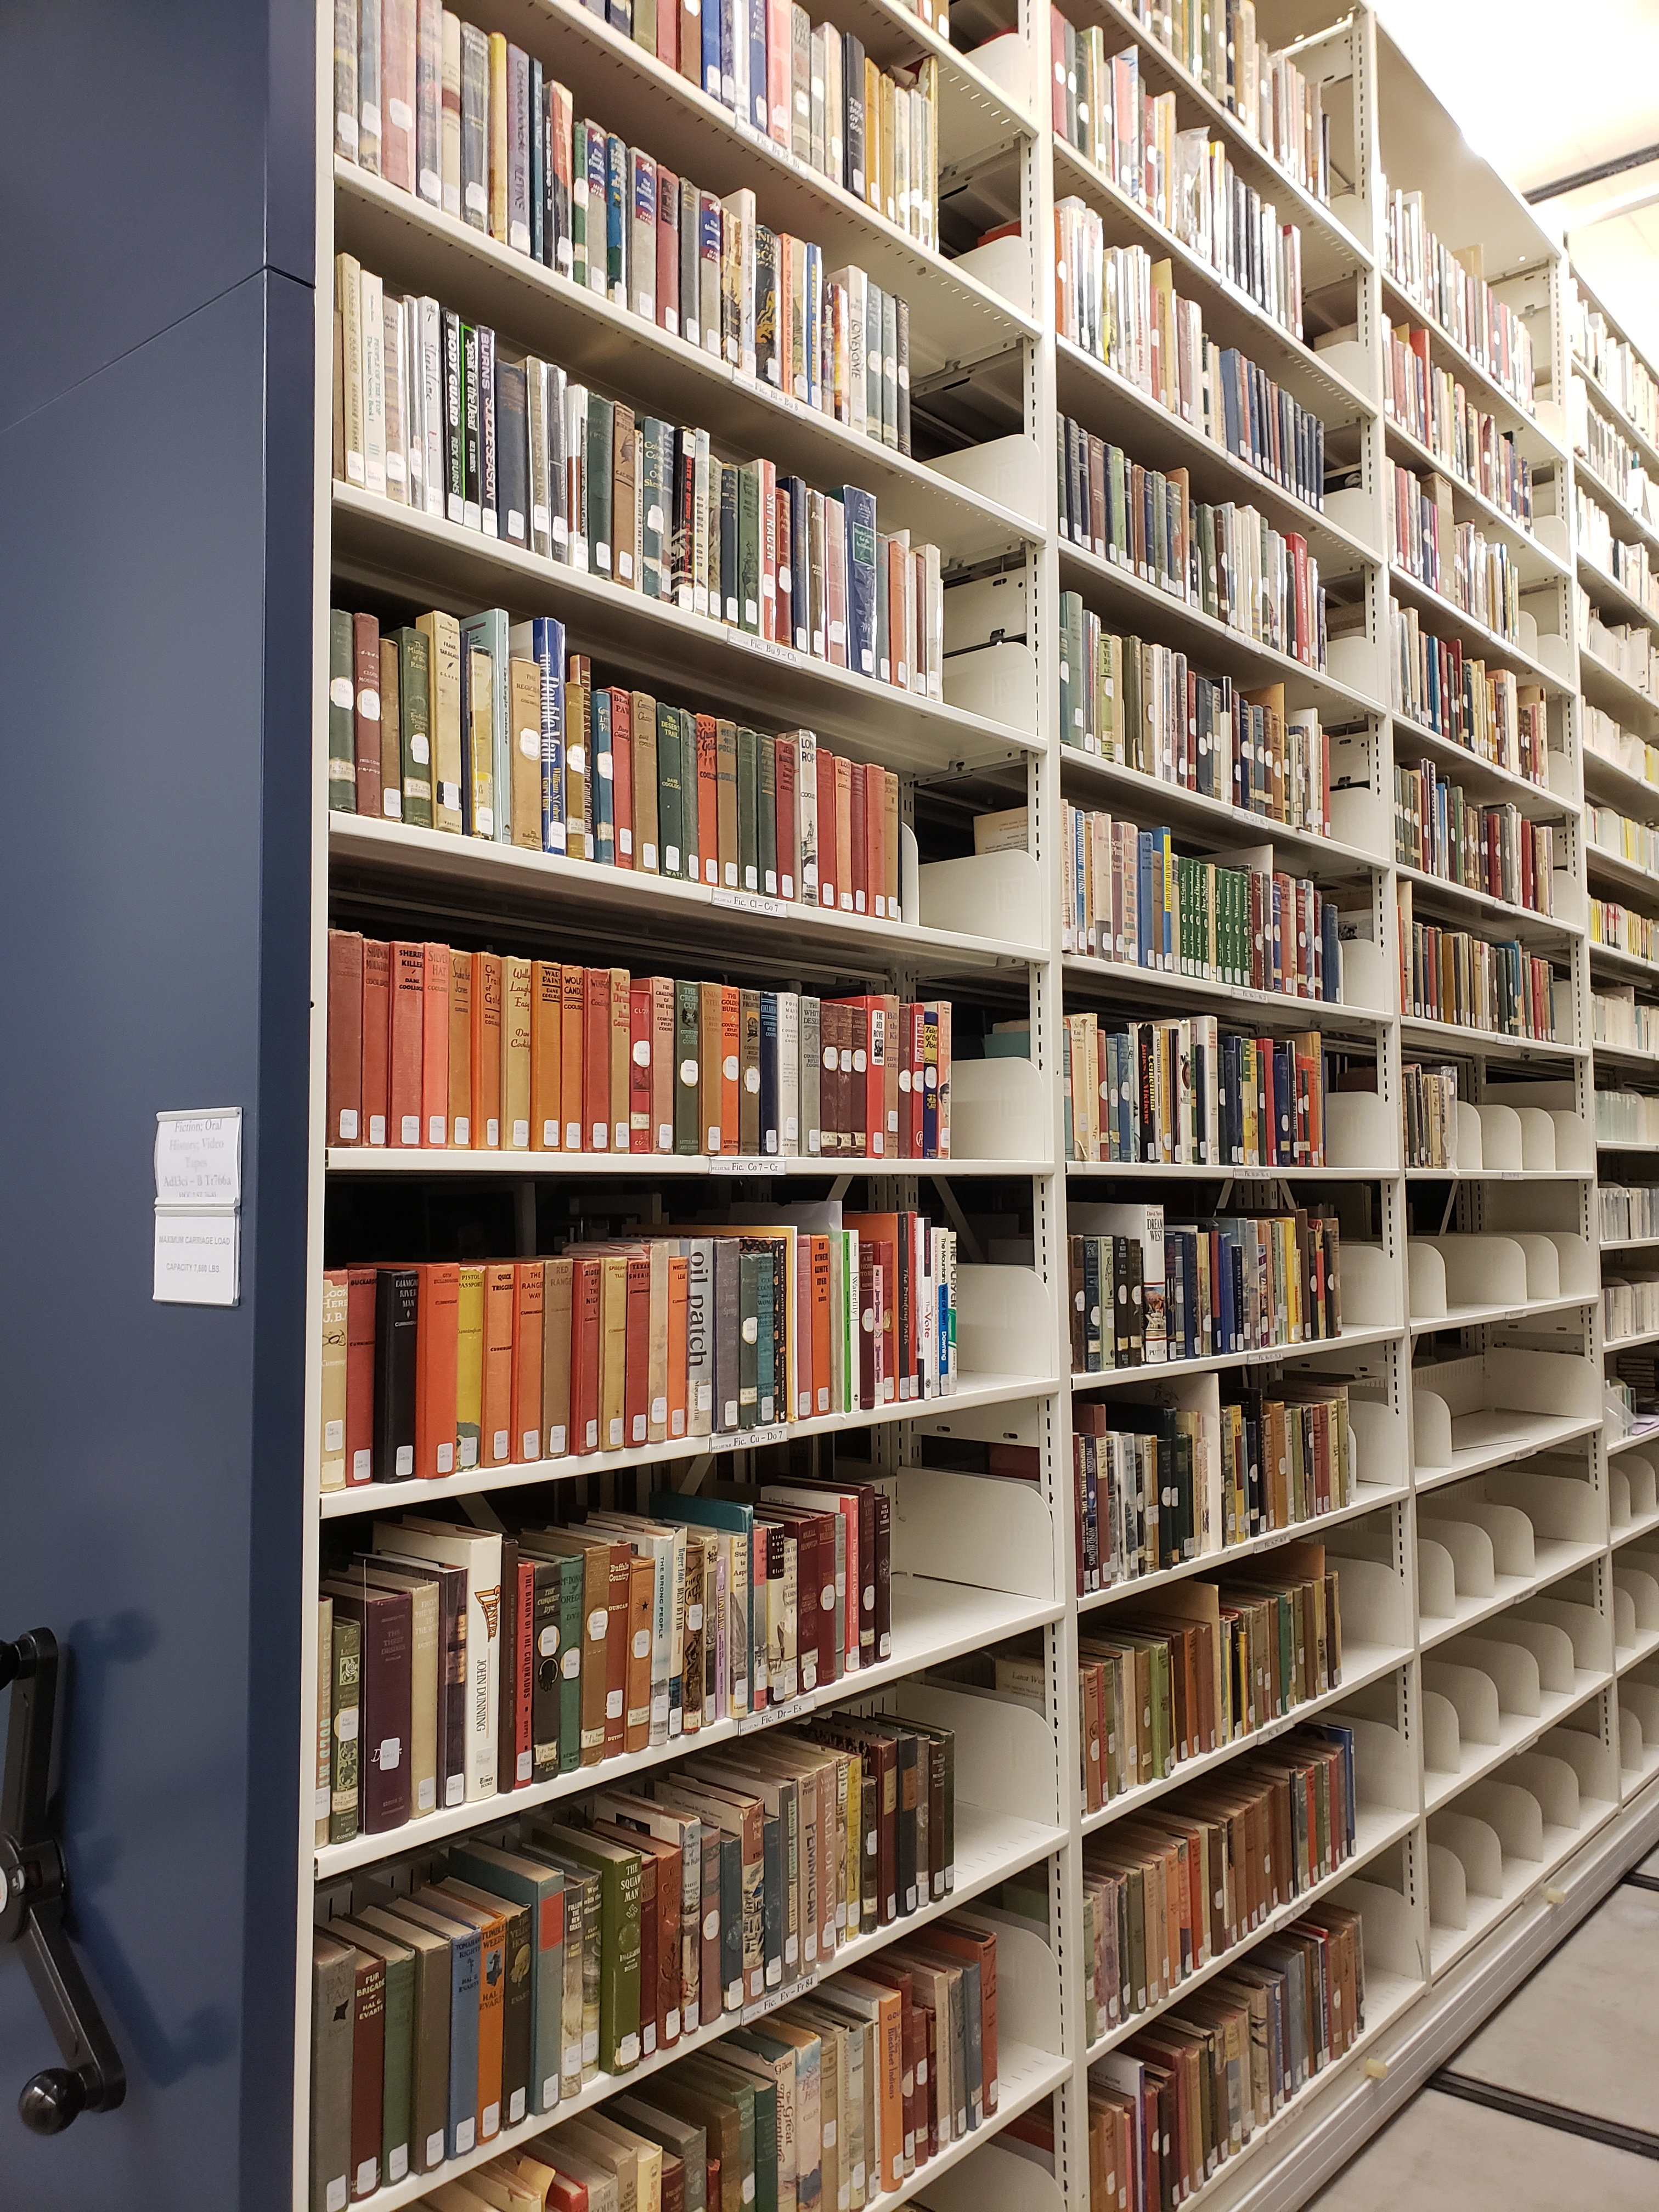 Fiction shelves in library storage